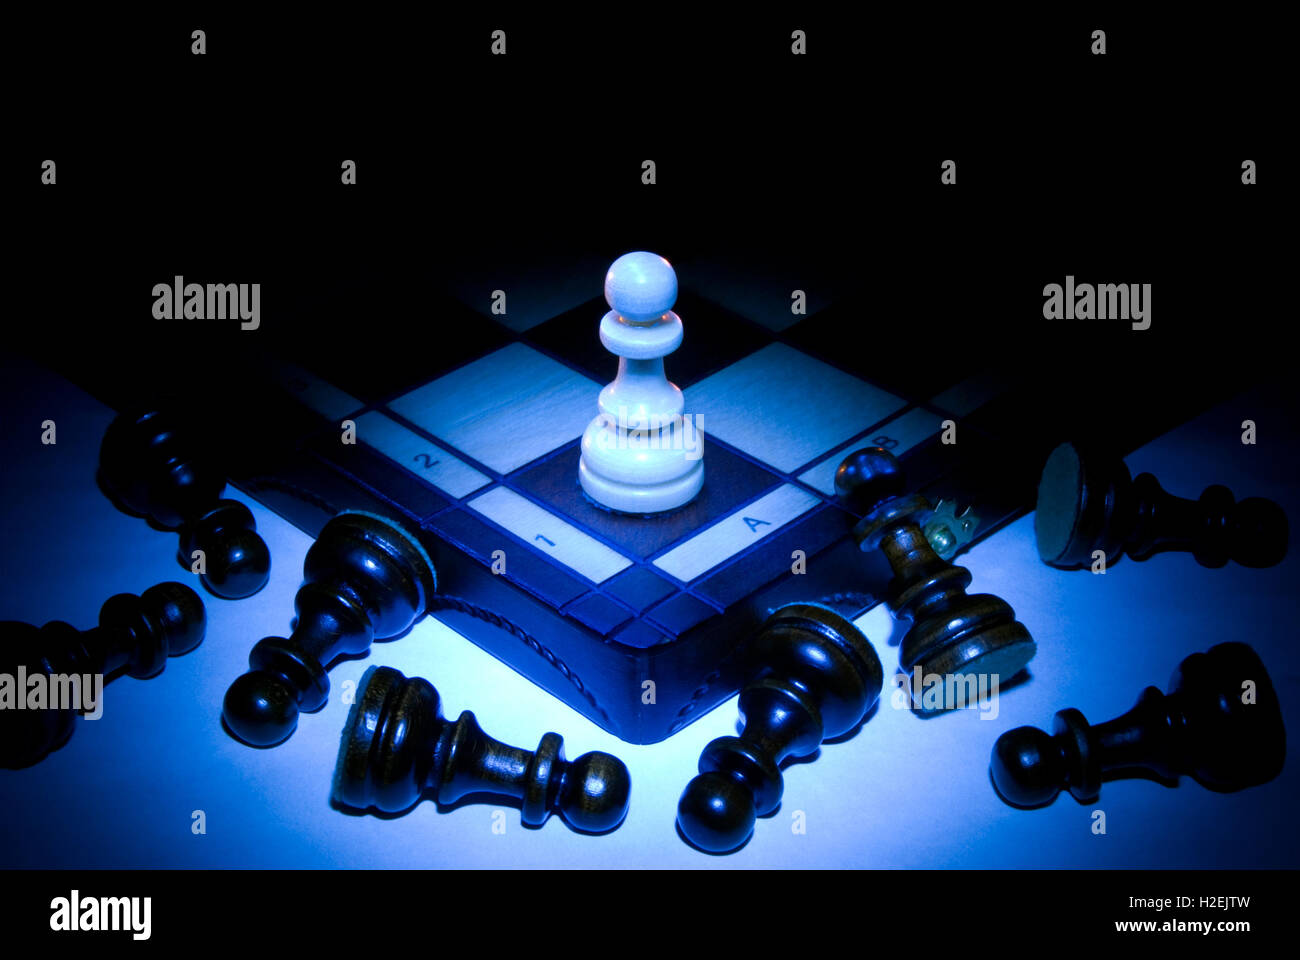 Chess board and pawns  A dark blue art background  Black